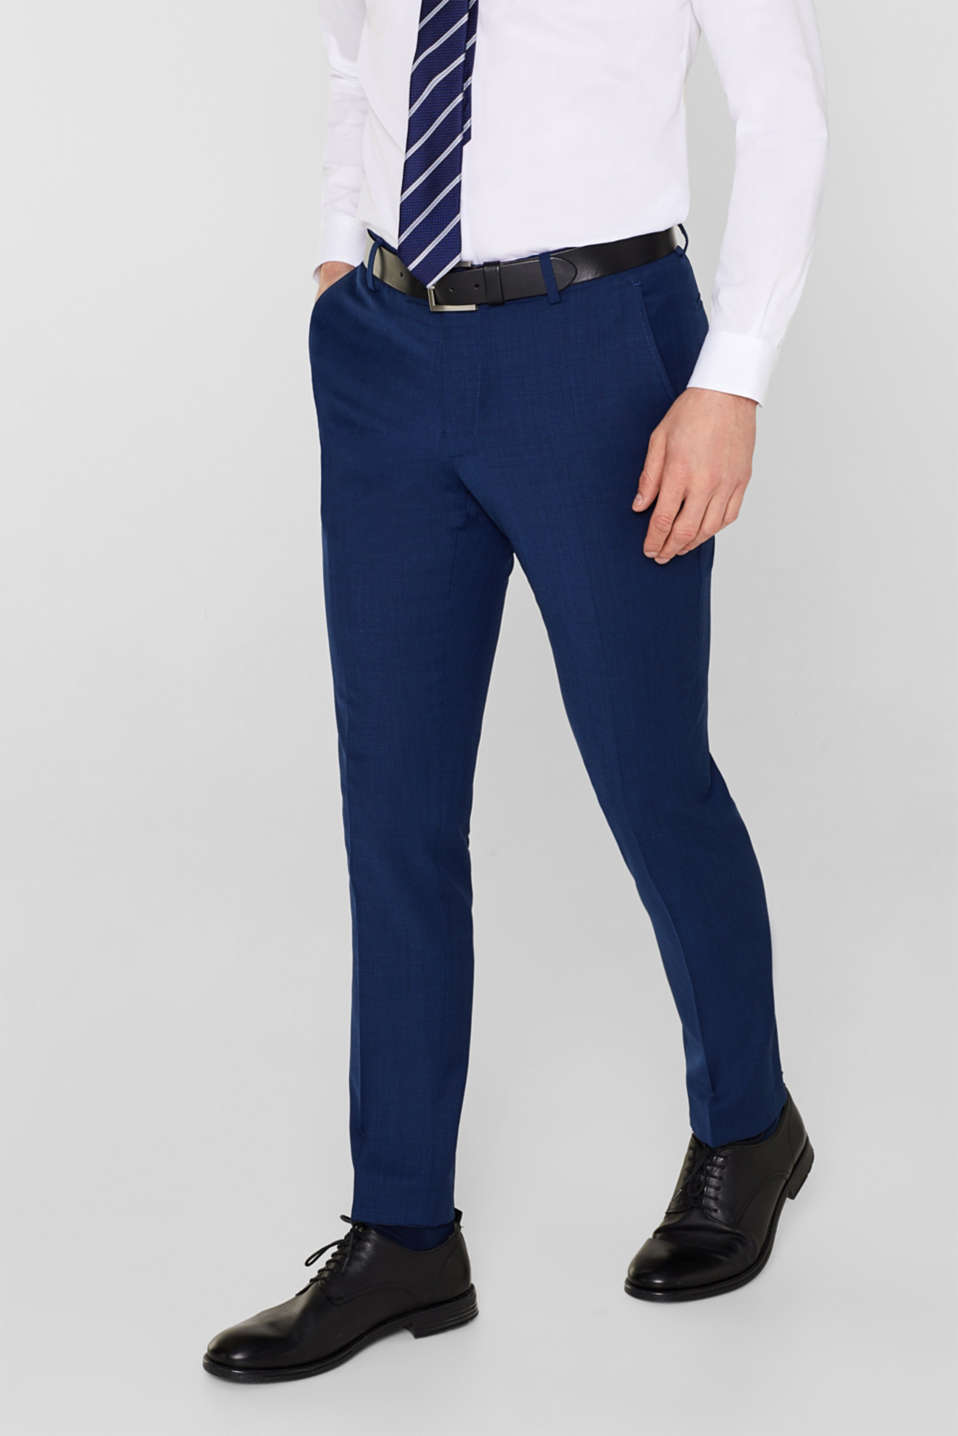 Esprit - Mix + Match ACTIVE SUIT : le pantalon de costume texturé